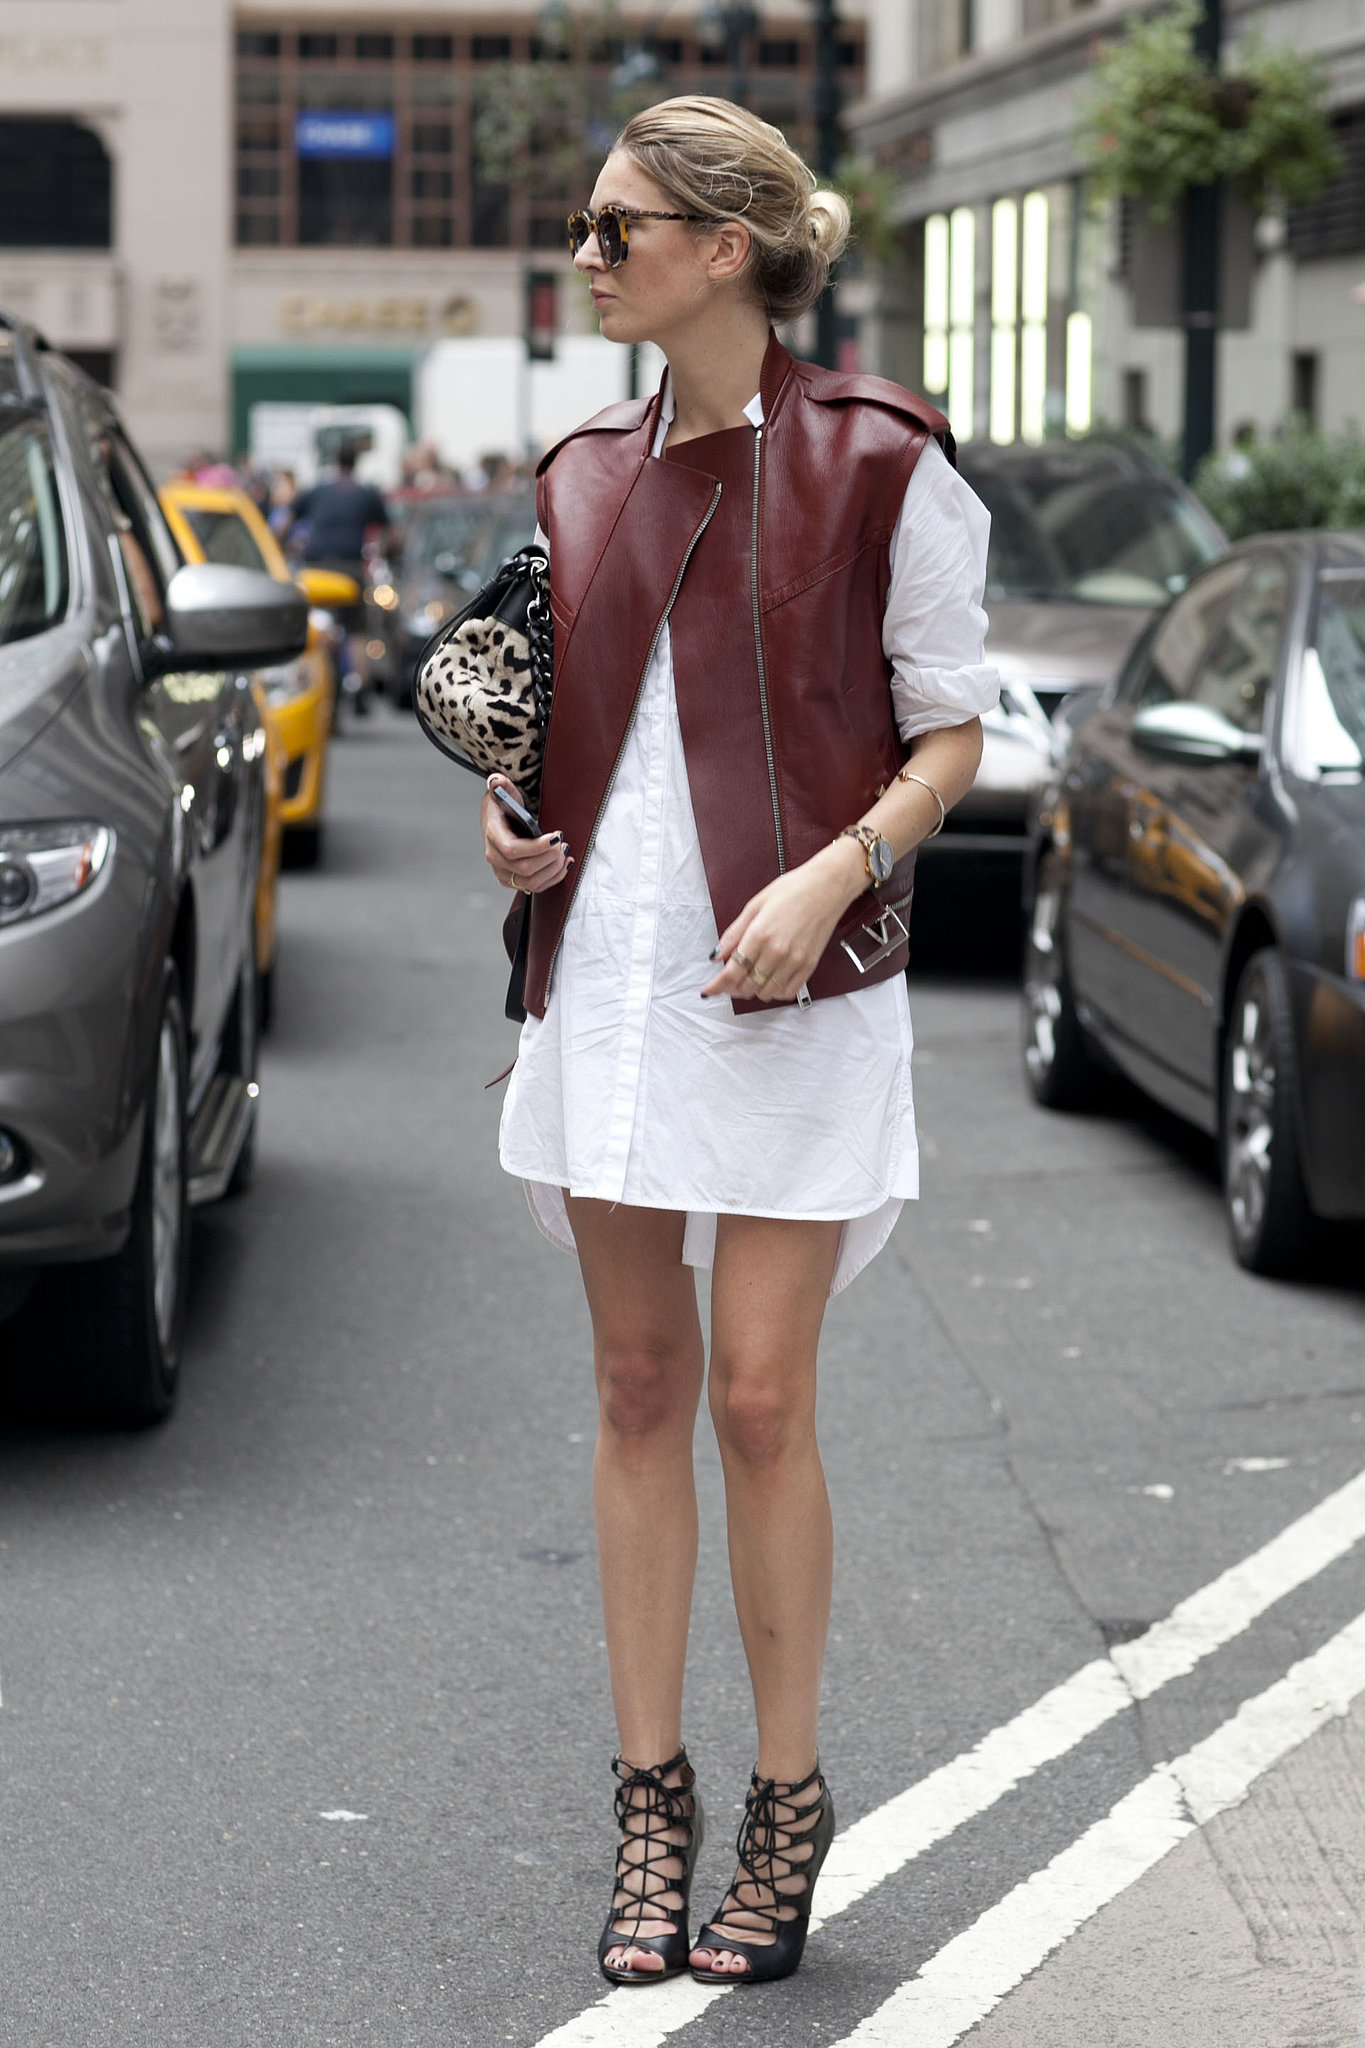 She-toughened-up-white-shirt-dress-burgundy-leather-hot.jpg